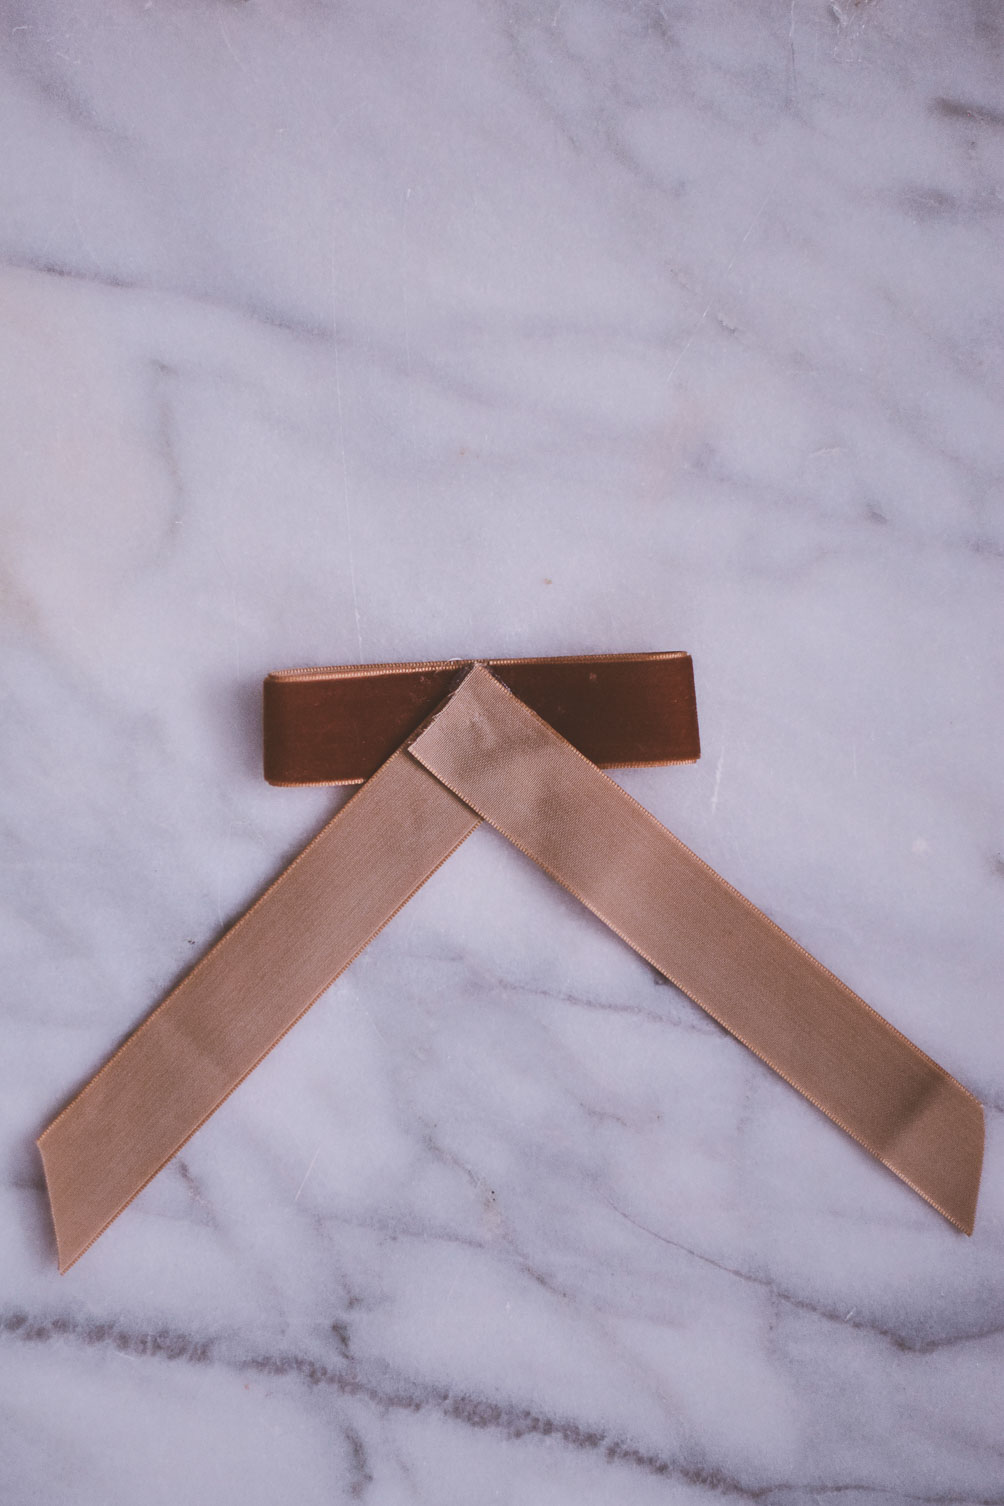 diy velvet hair tie ribbon tutorial in rust